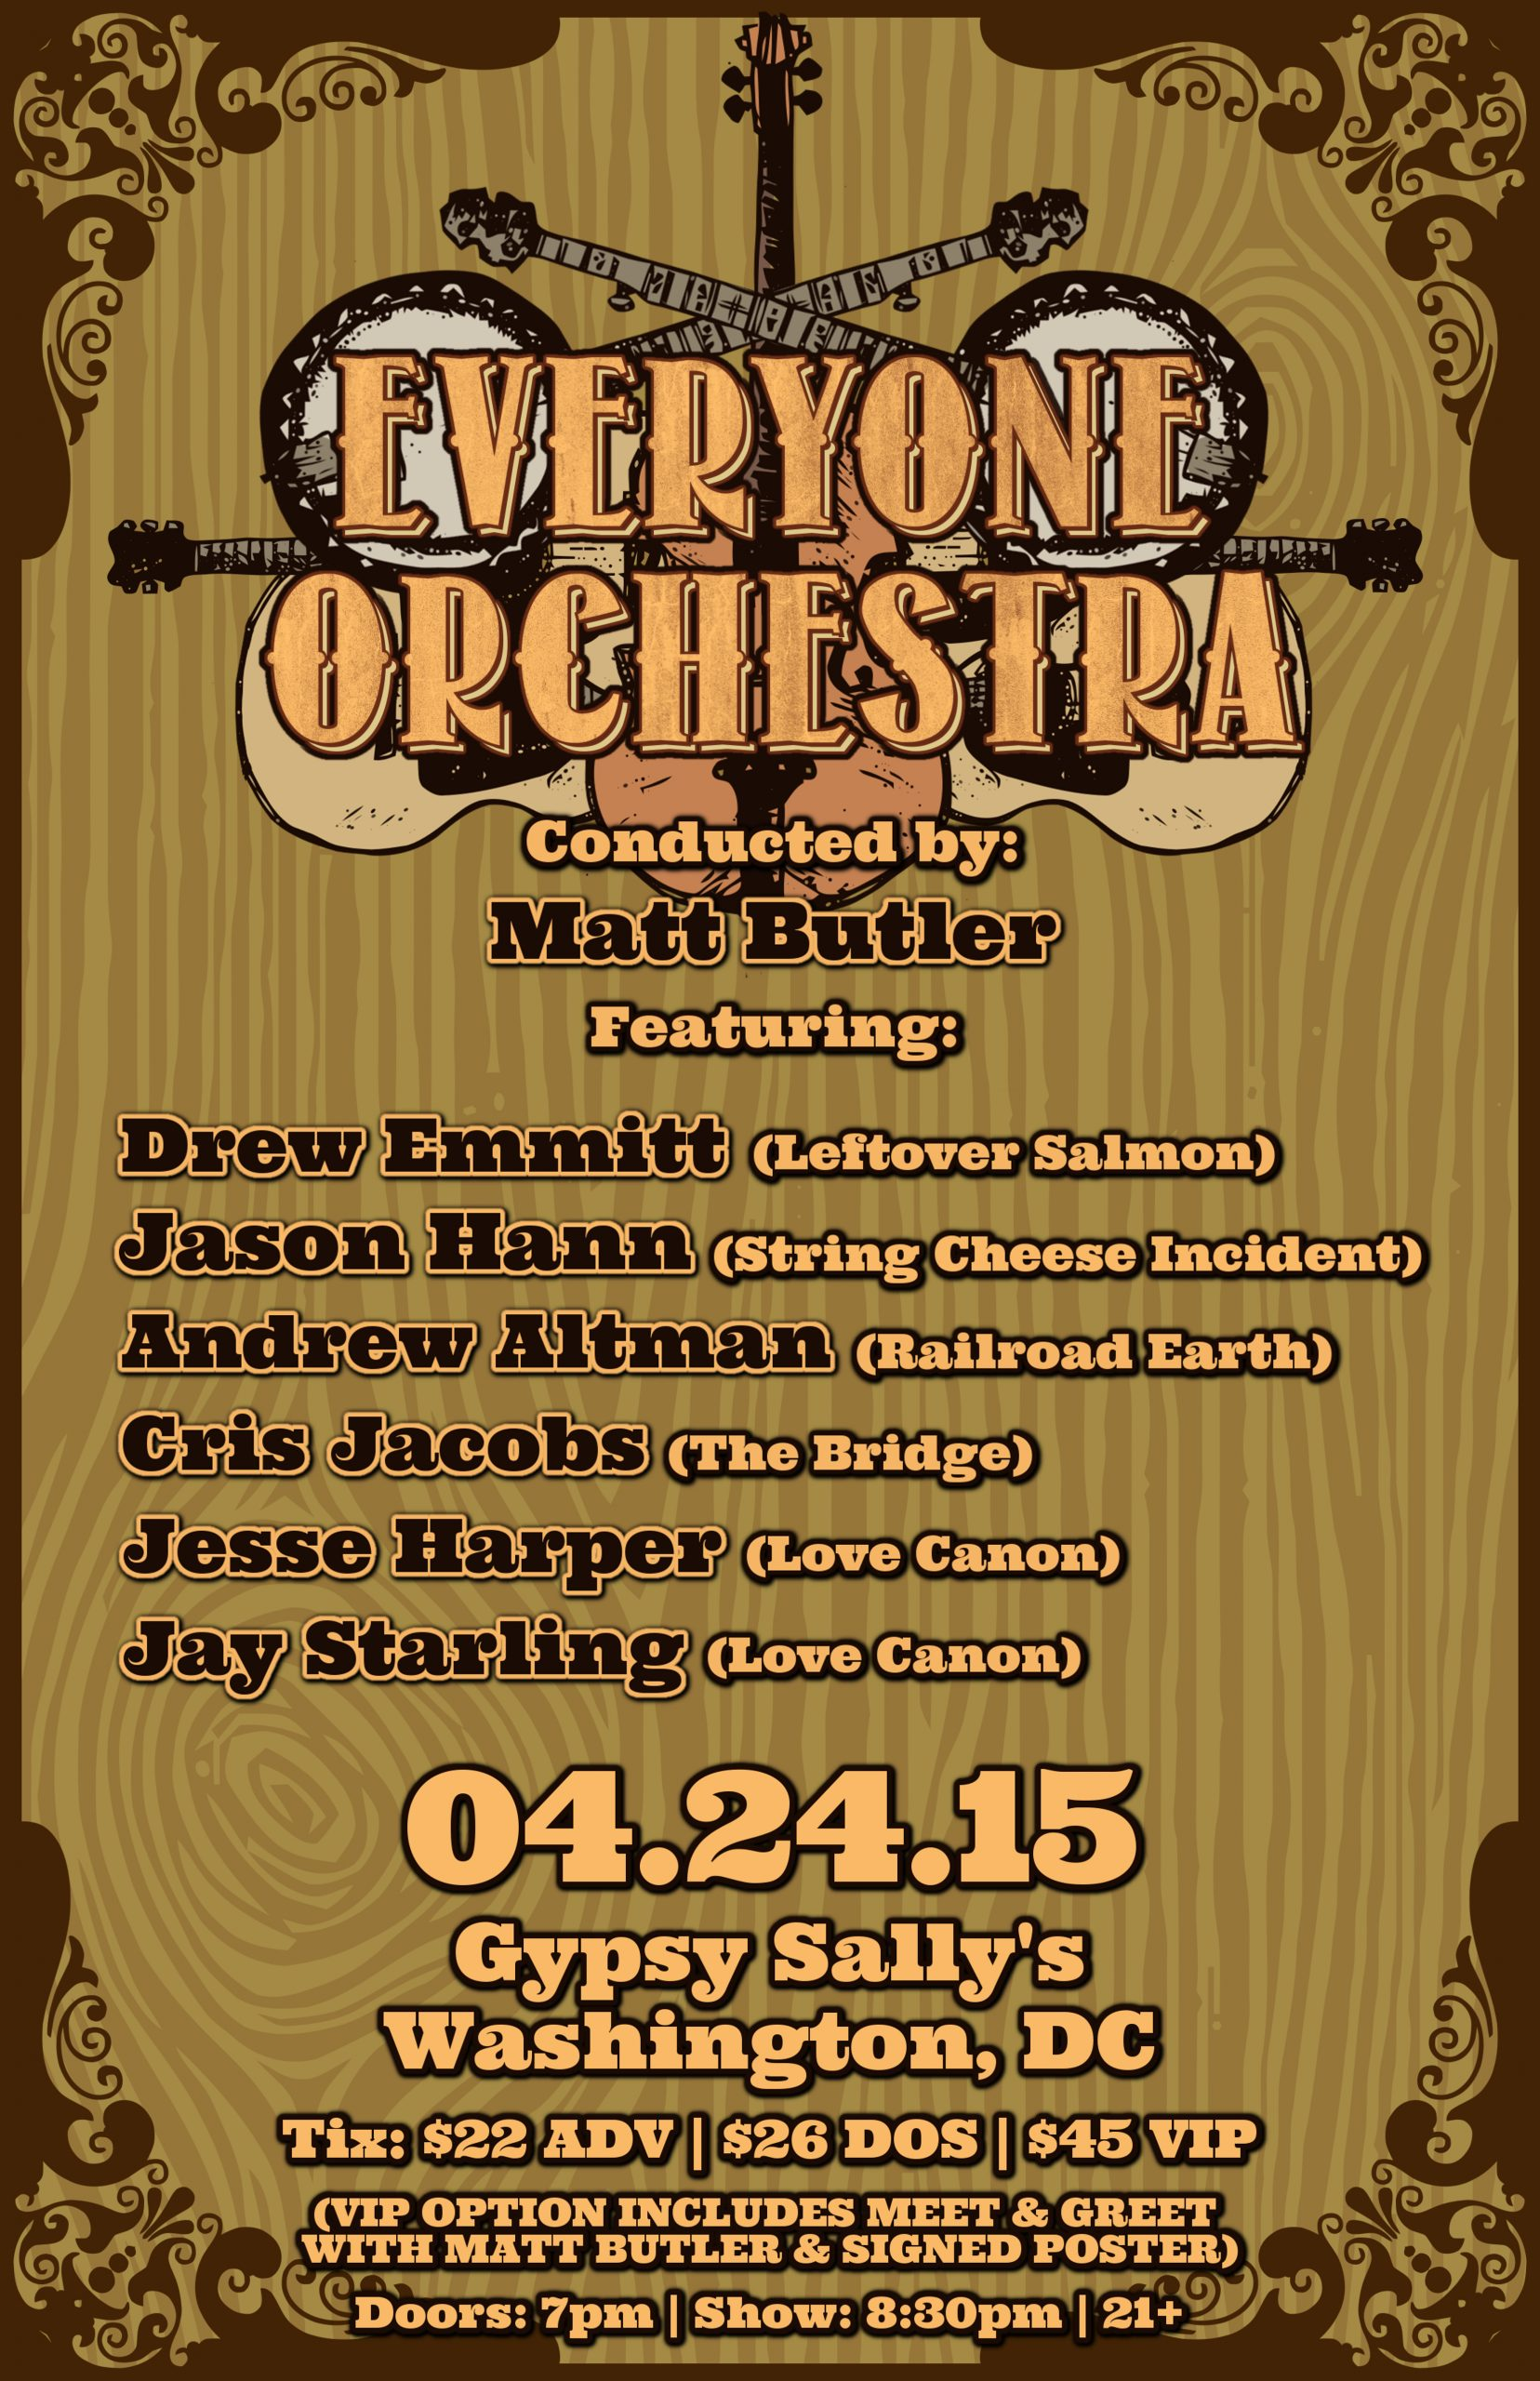 TheEveryoneOrchestraPlays Gypsy Sally's Fri 4/24 w/ Members of Leftover Salmon, String Cheese Incident, Railroad Earth, The Bridge, and Love Canon